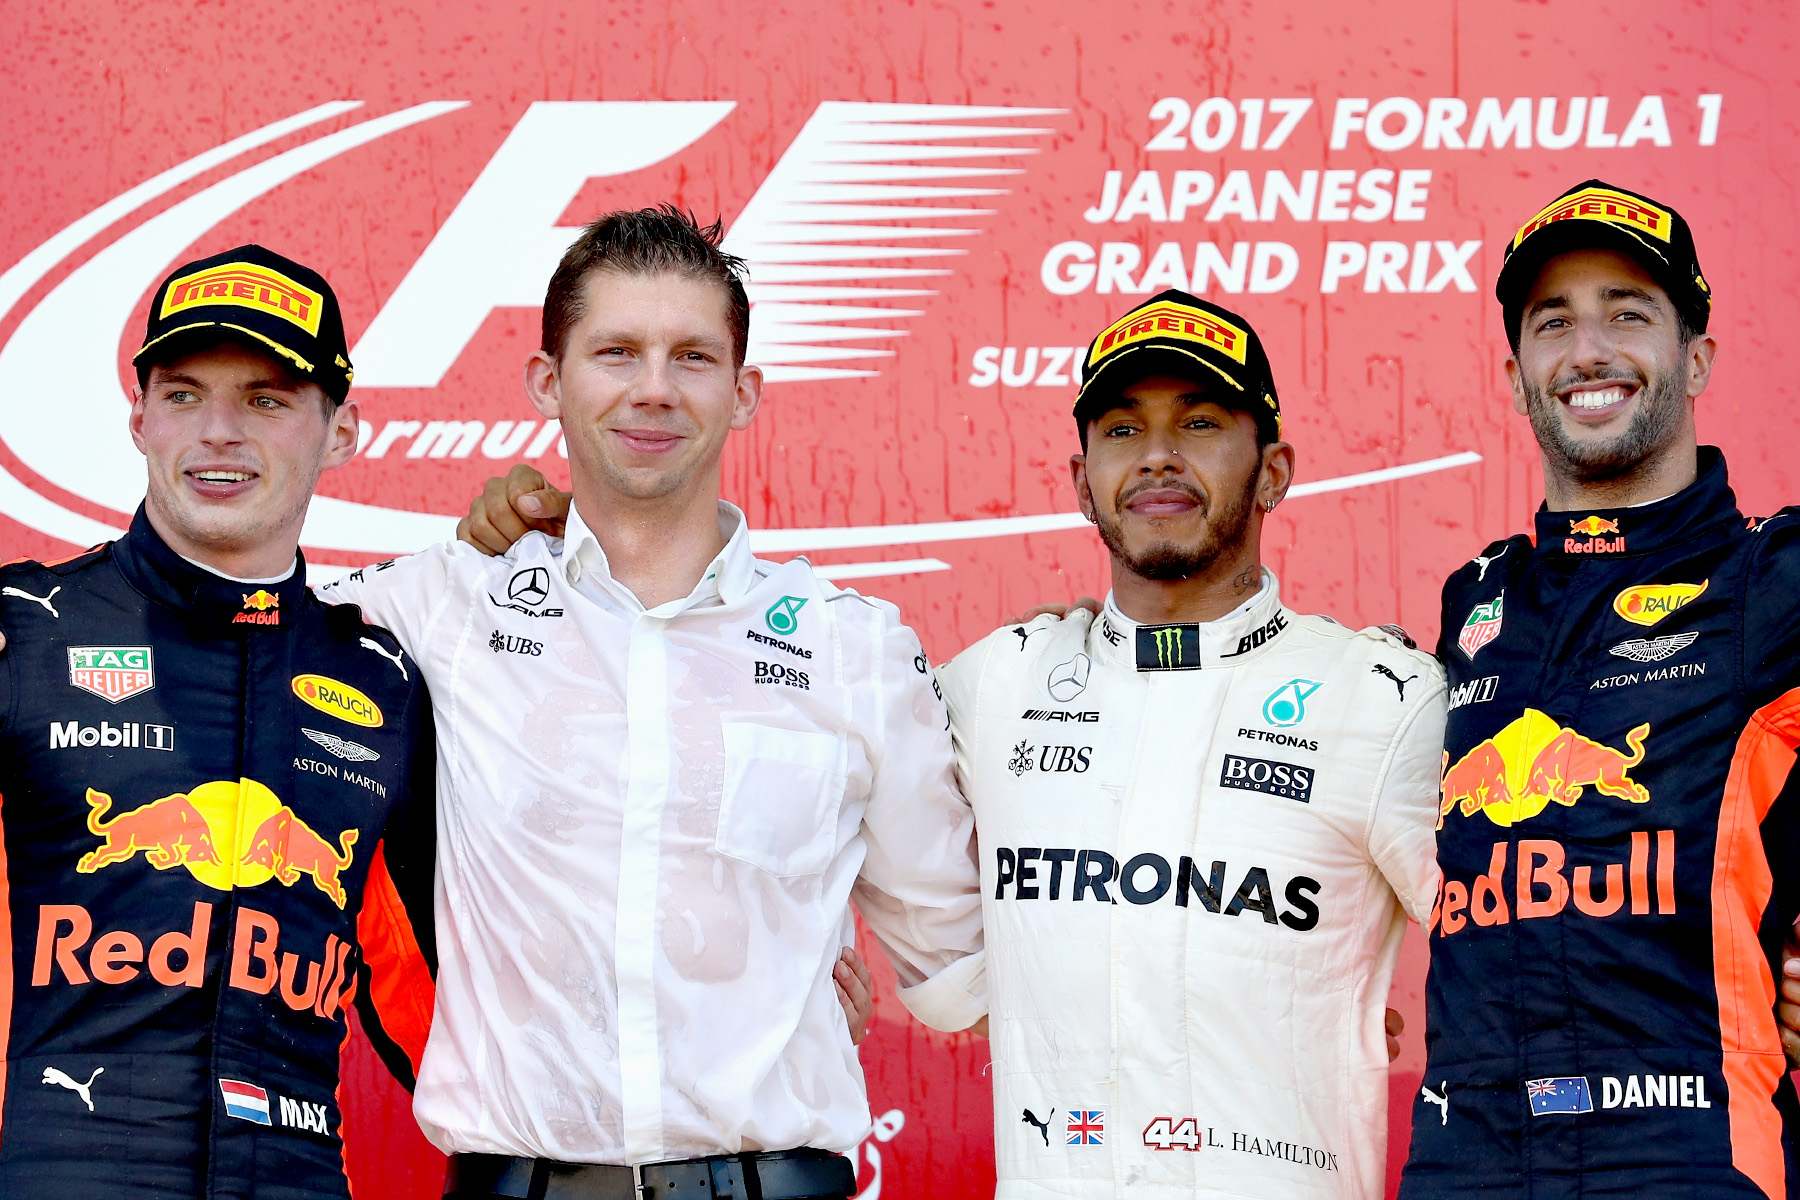 Max Verstappen, Lewis Hamilton and Daniel Ricciardo celebrate on the podium with Mercedes strategist James Vowels on the podium of the 2017 Japanese Grand Prix.